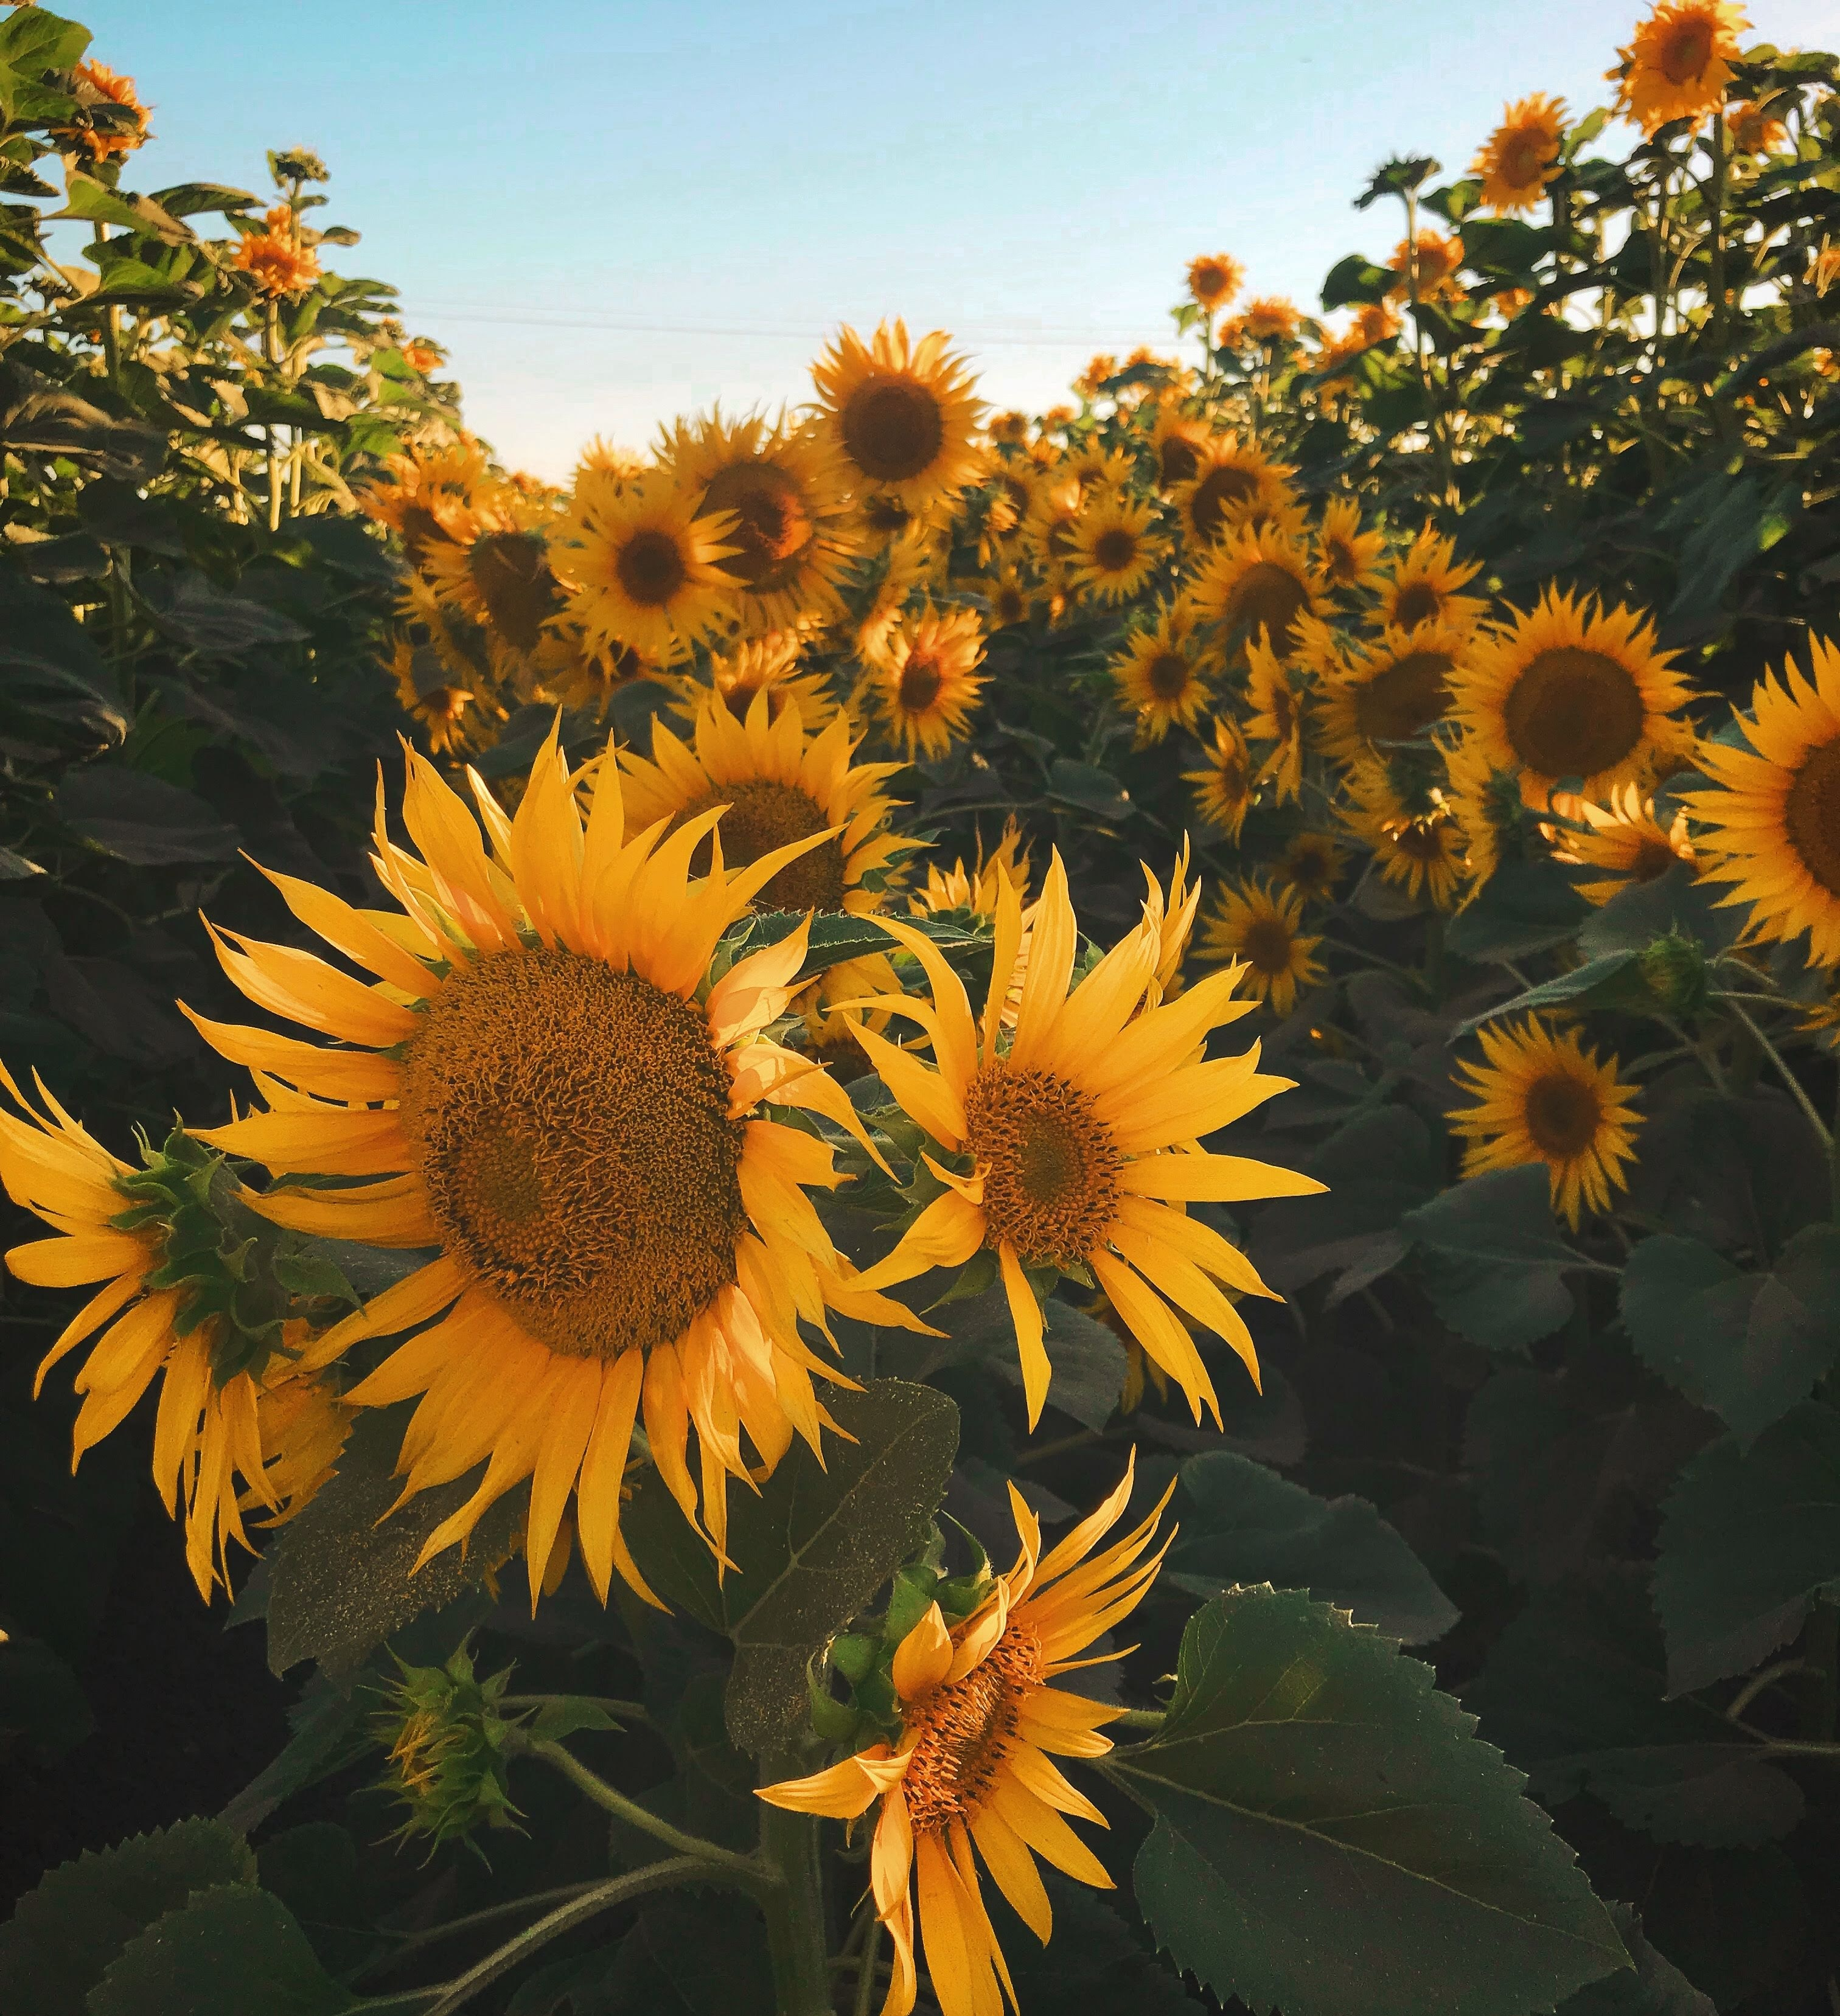 close-up photography of sunflowers